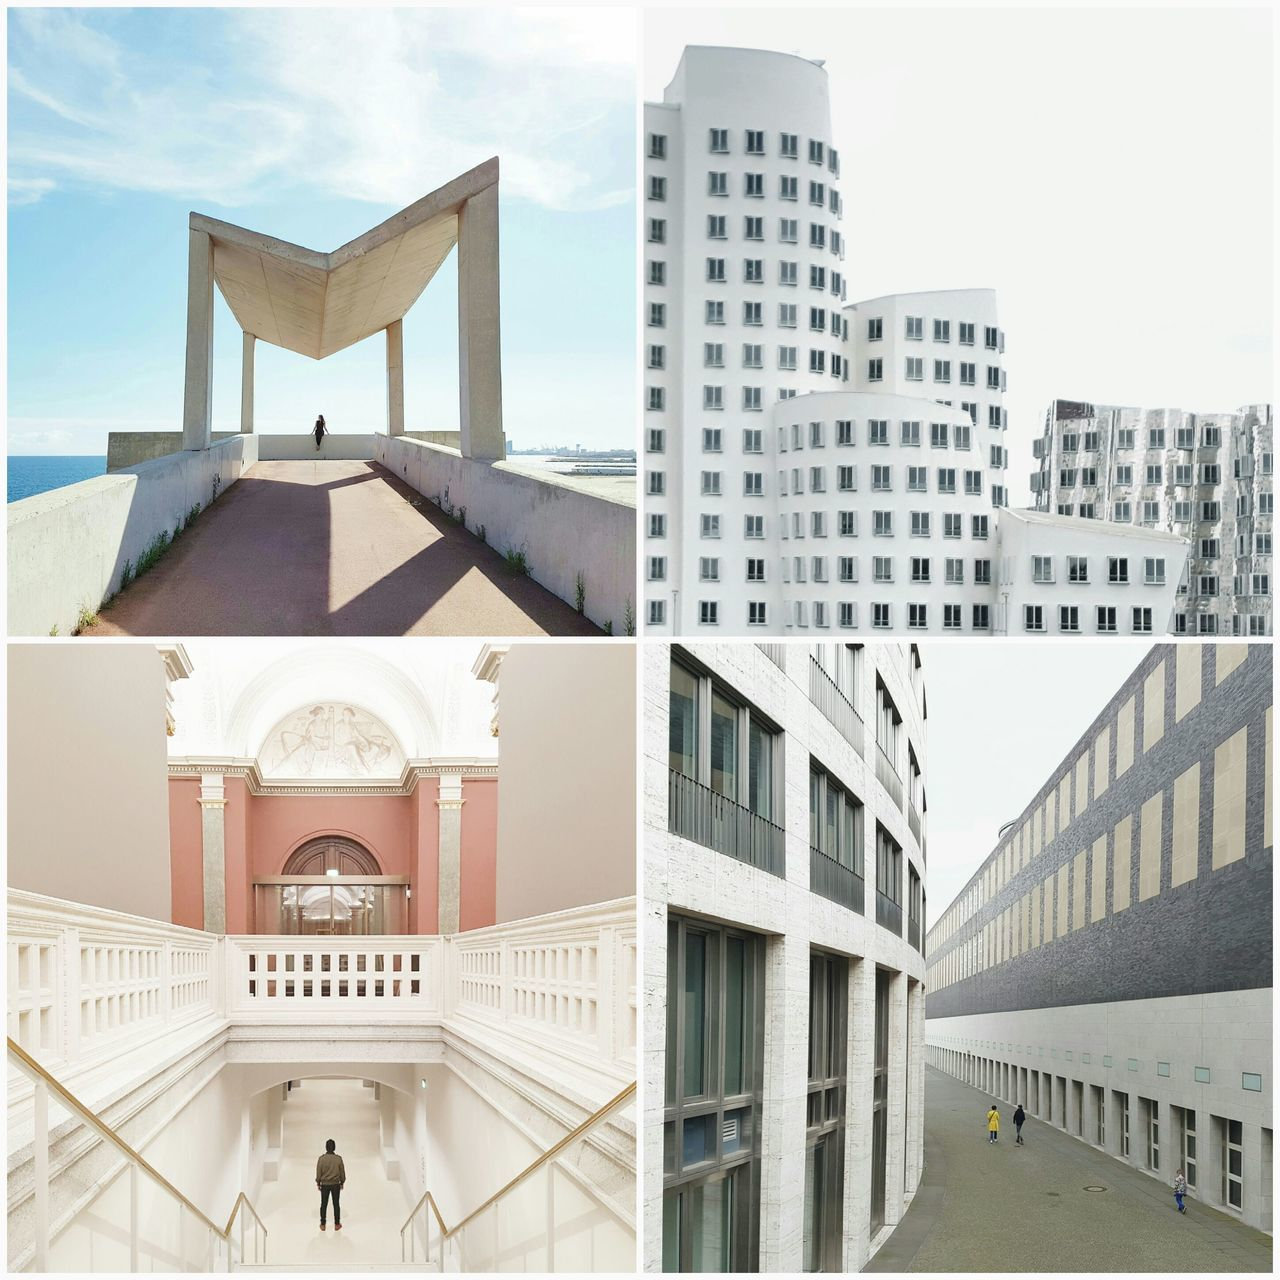 Throwback 2016. Some of my favourite work. Modern Architecture Building Exterior Travel Destinations Outdoors Barcelona Streetphotography Urban Geometry Facades Stairs Travelling Minimalism Windows Vanishing Point Passion For Photography Happiness Cobblestone My 2016 Symmetry Business Finance And Industry City Round Architecture Houses Walls Photo Collage